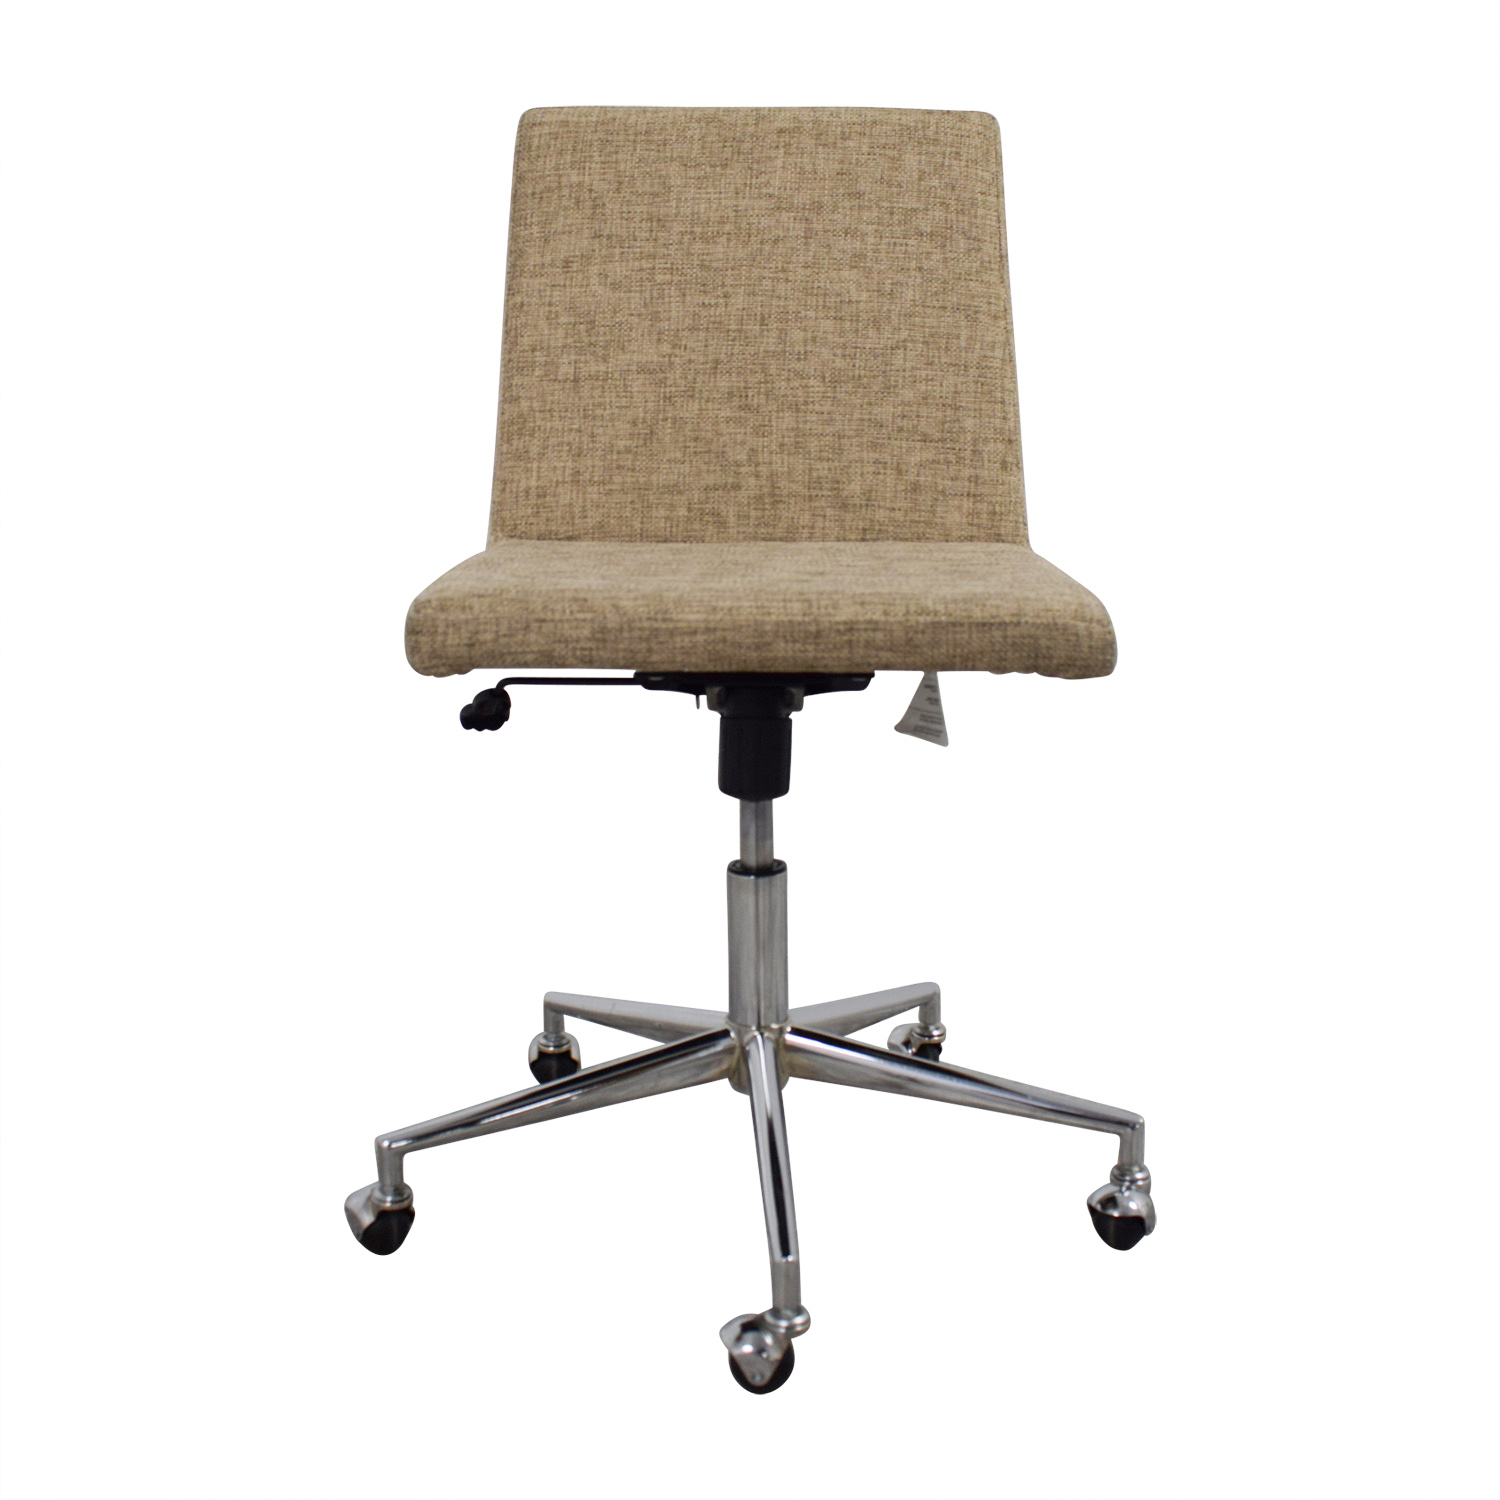 69 Off Beige Armless Swivel Office Chair Chairs